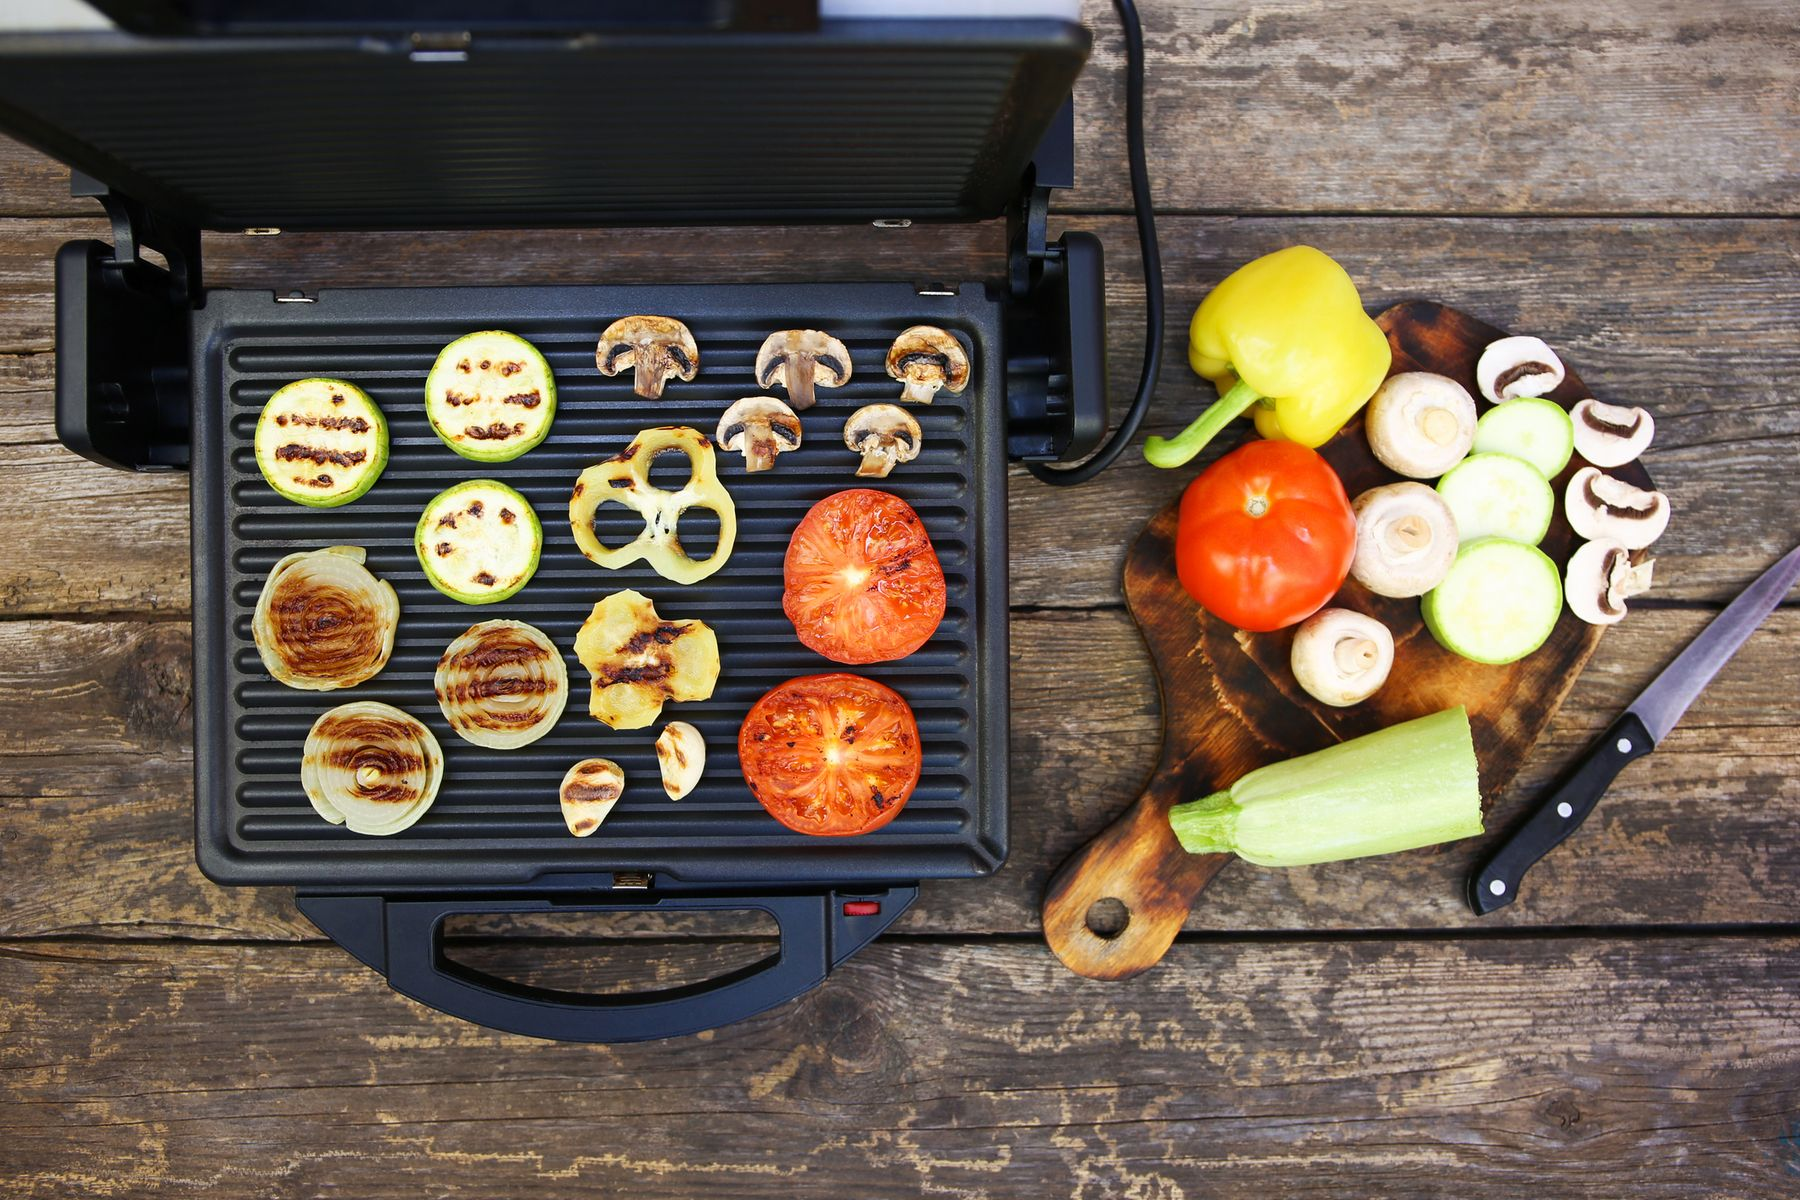 Electric grill with vegetables cooking on it